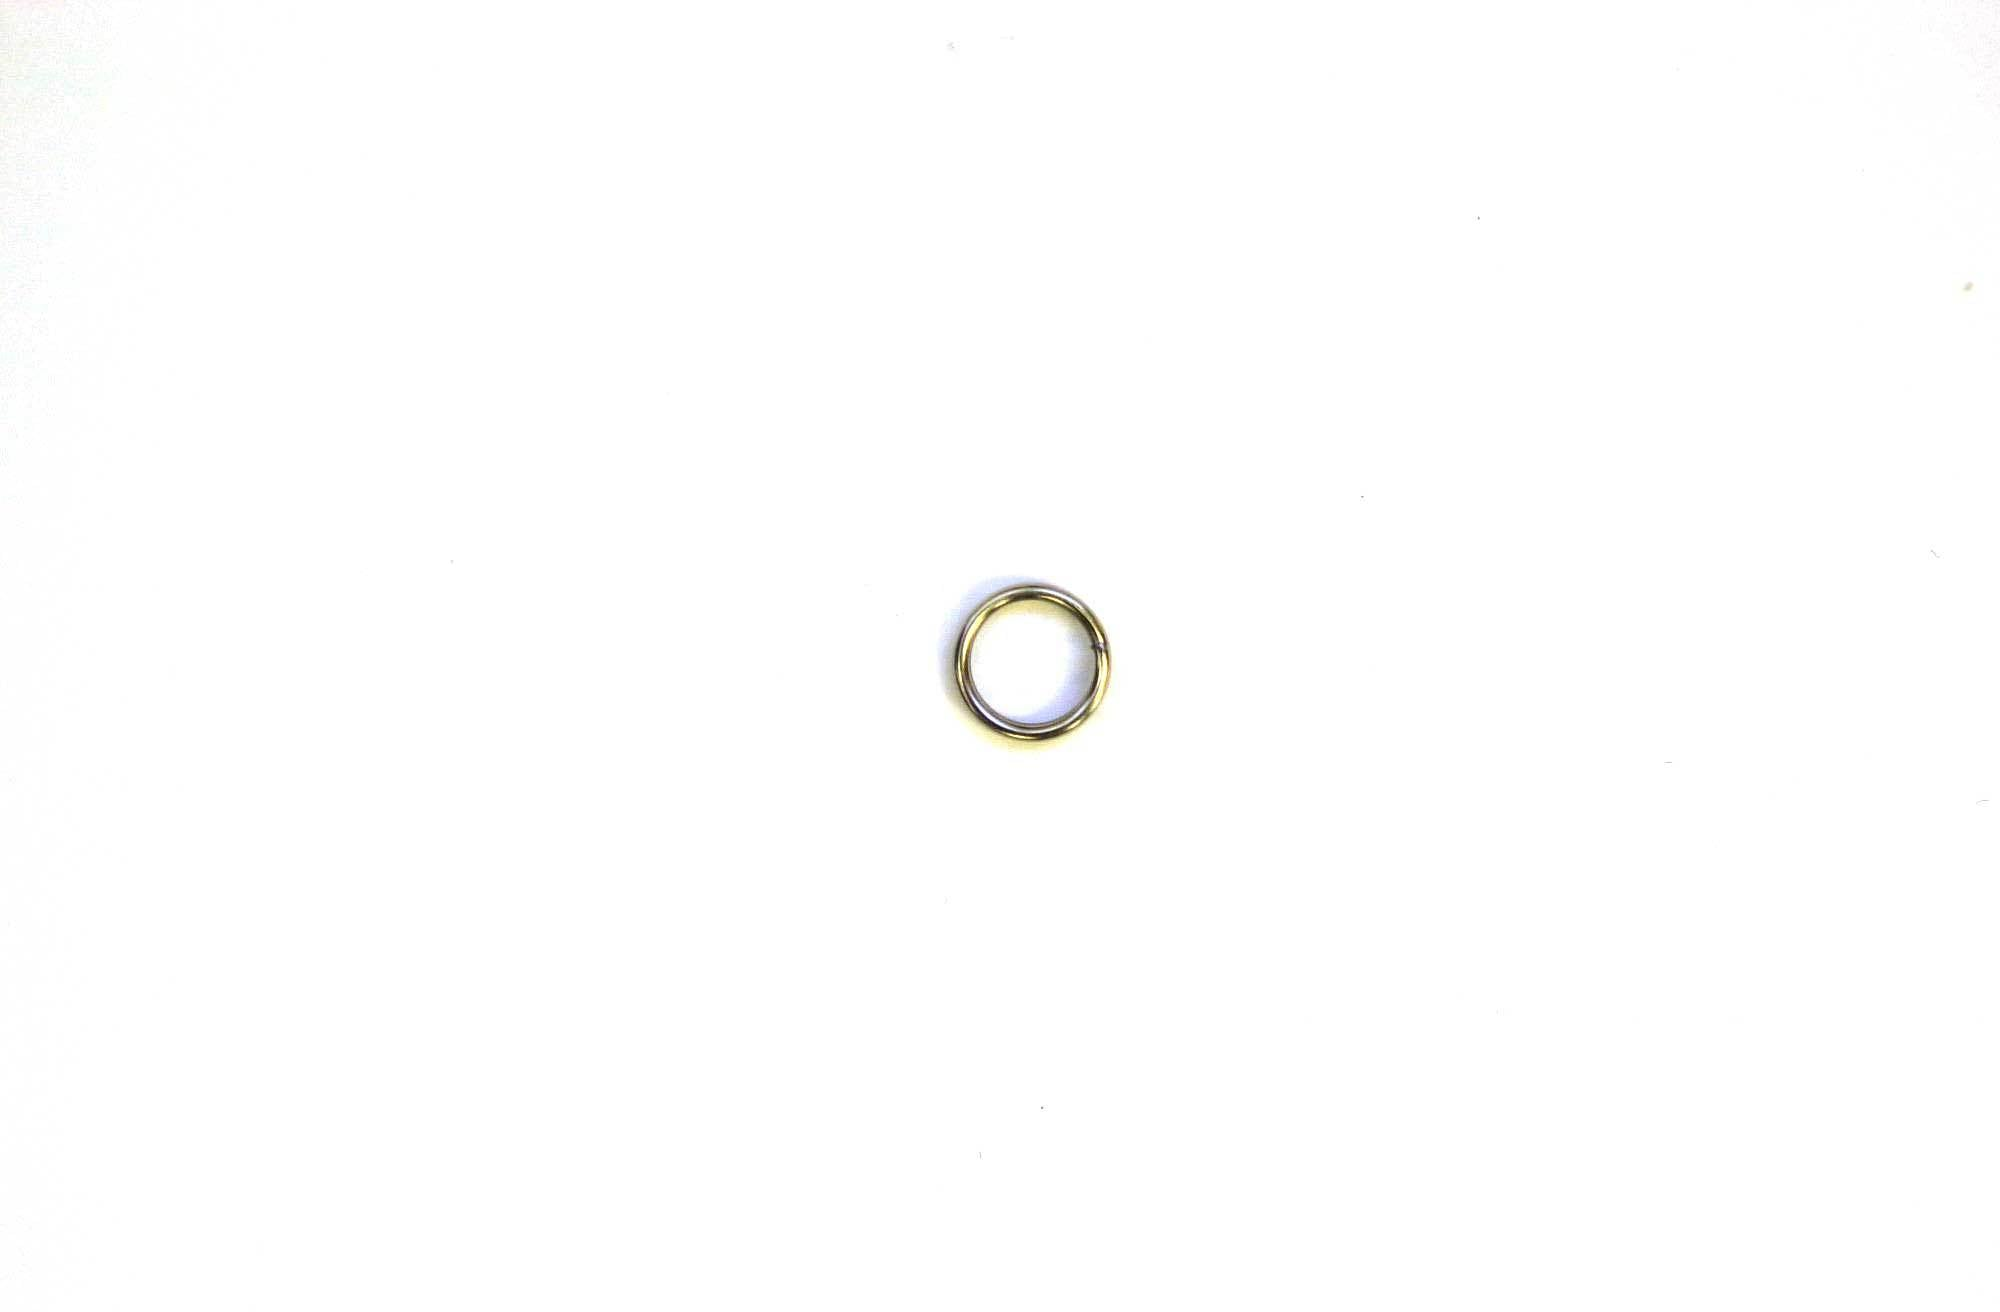 Eagle Claw Split Rings Nickle 10ct Size 3